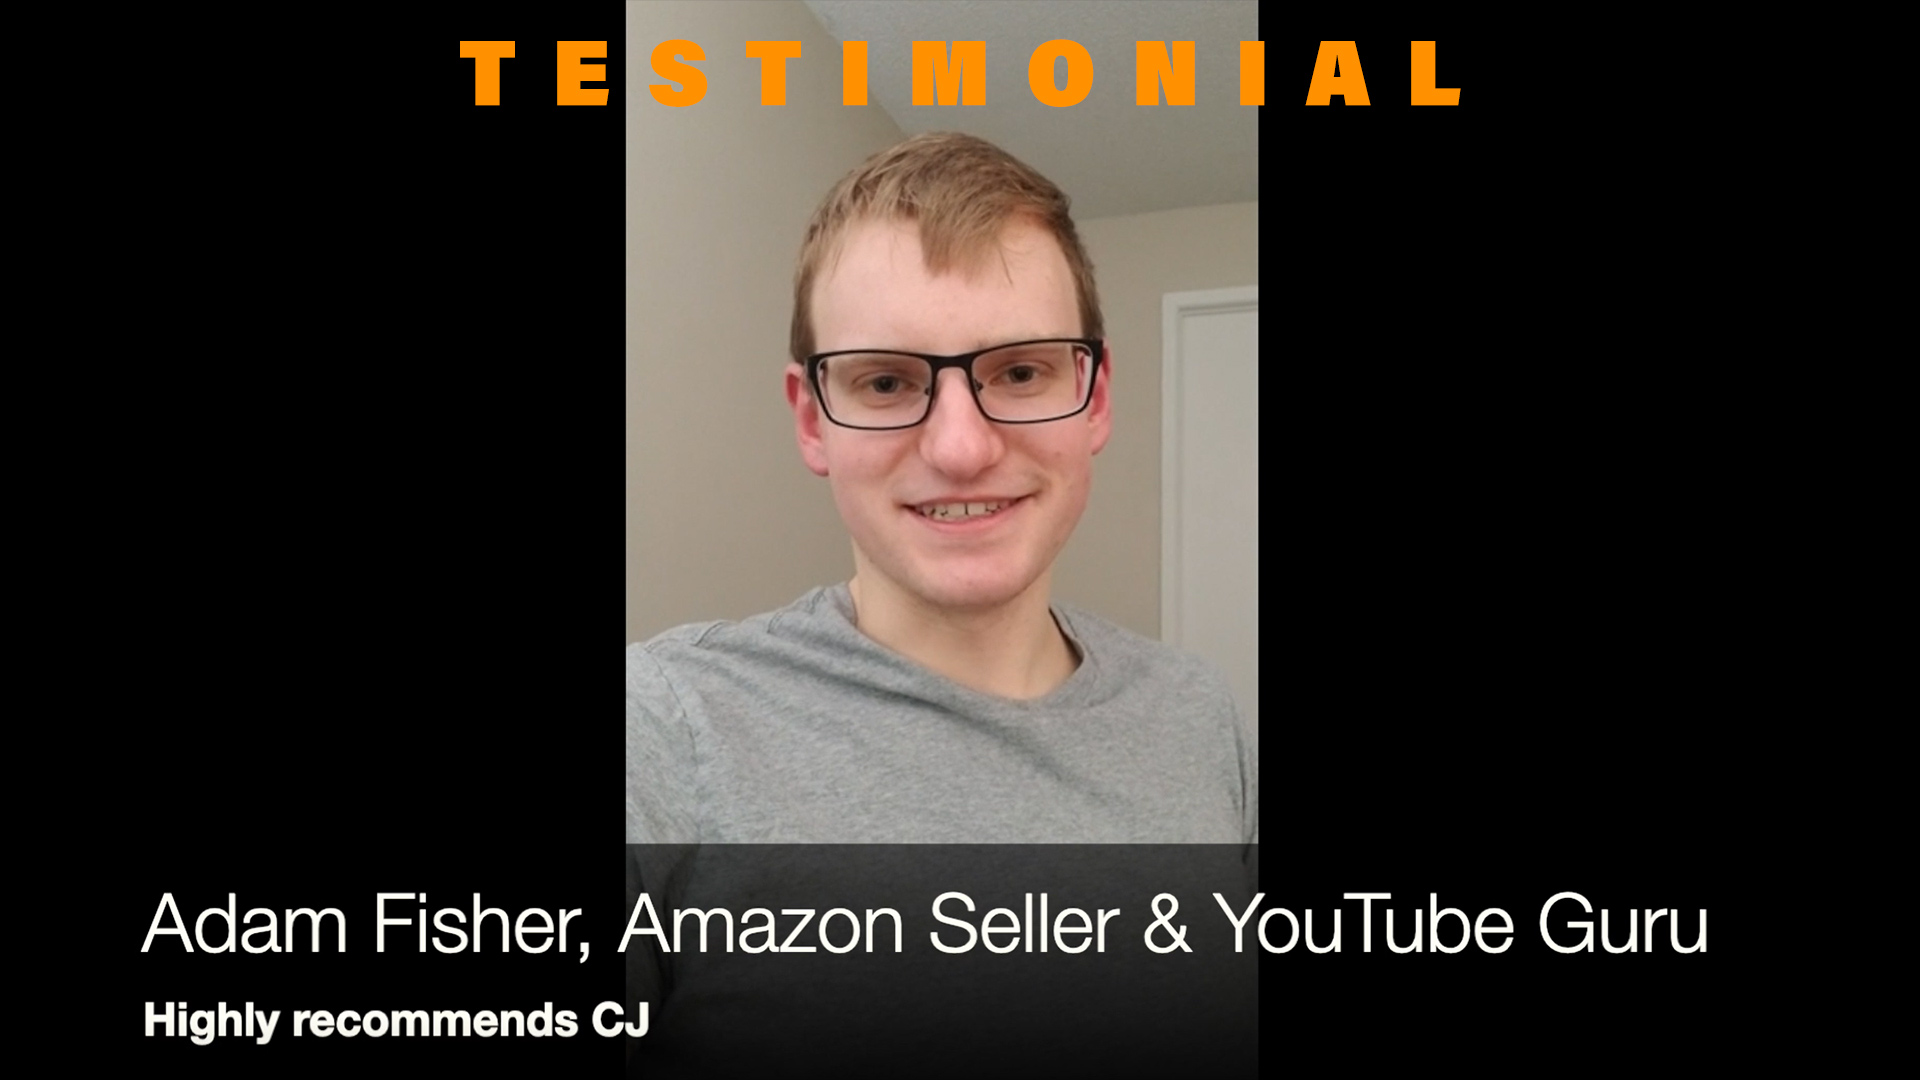 Amazon Seller Testimonial - Easy to Communicate With CJ